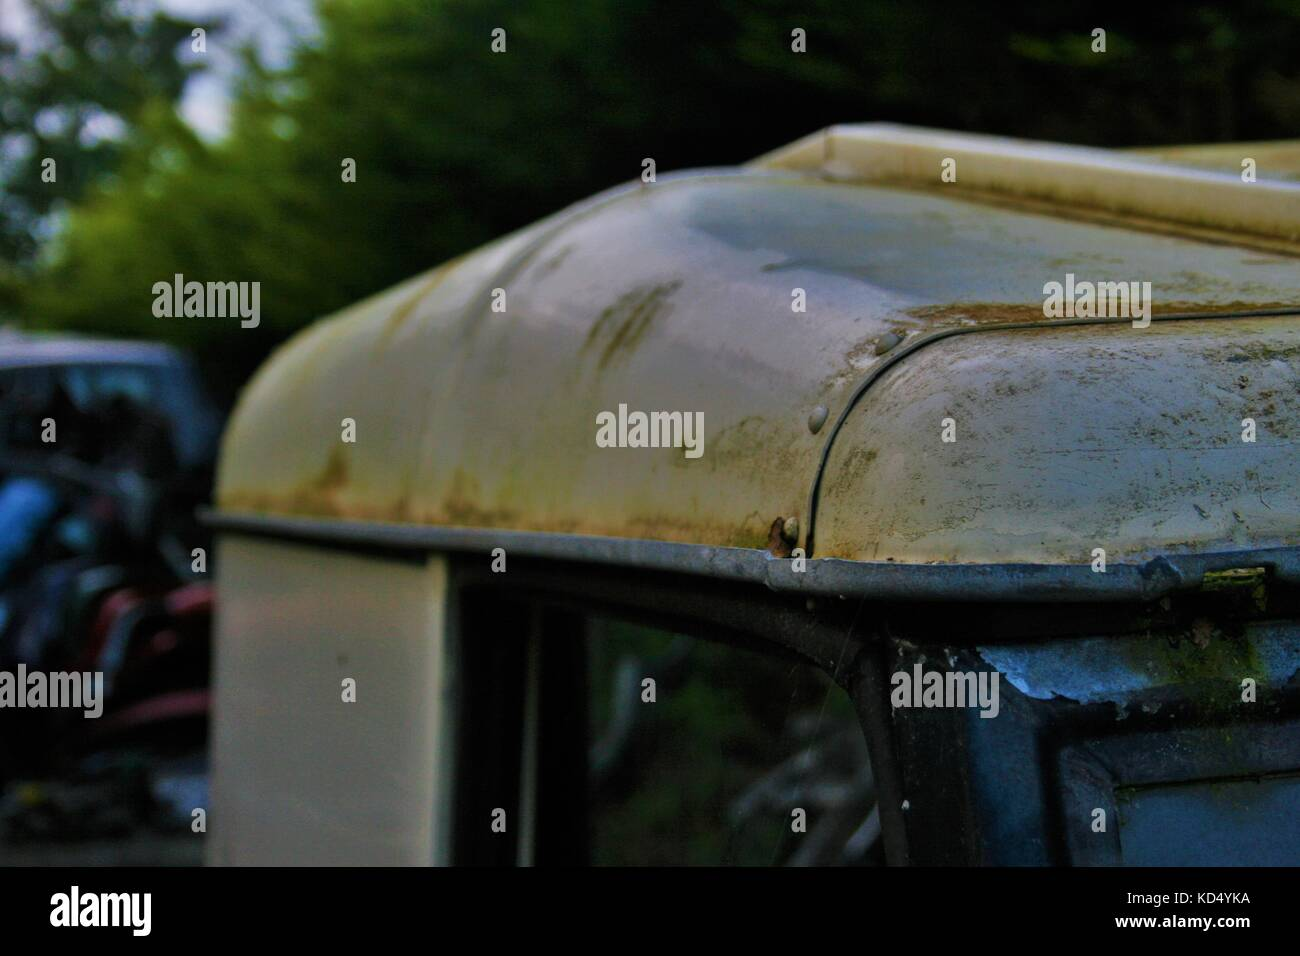 Roof Of An Abandoned Land Rover In A Scrap Yard - Stock Image